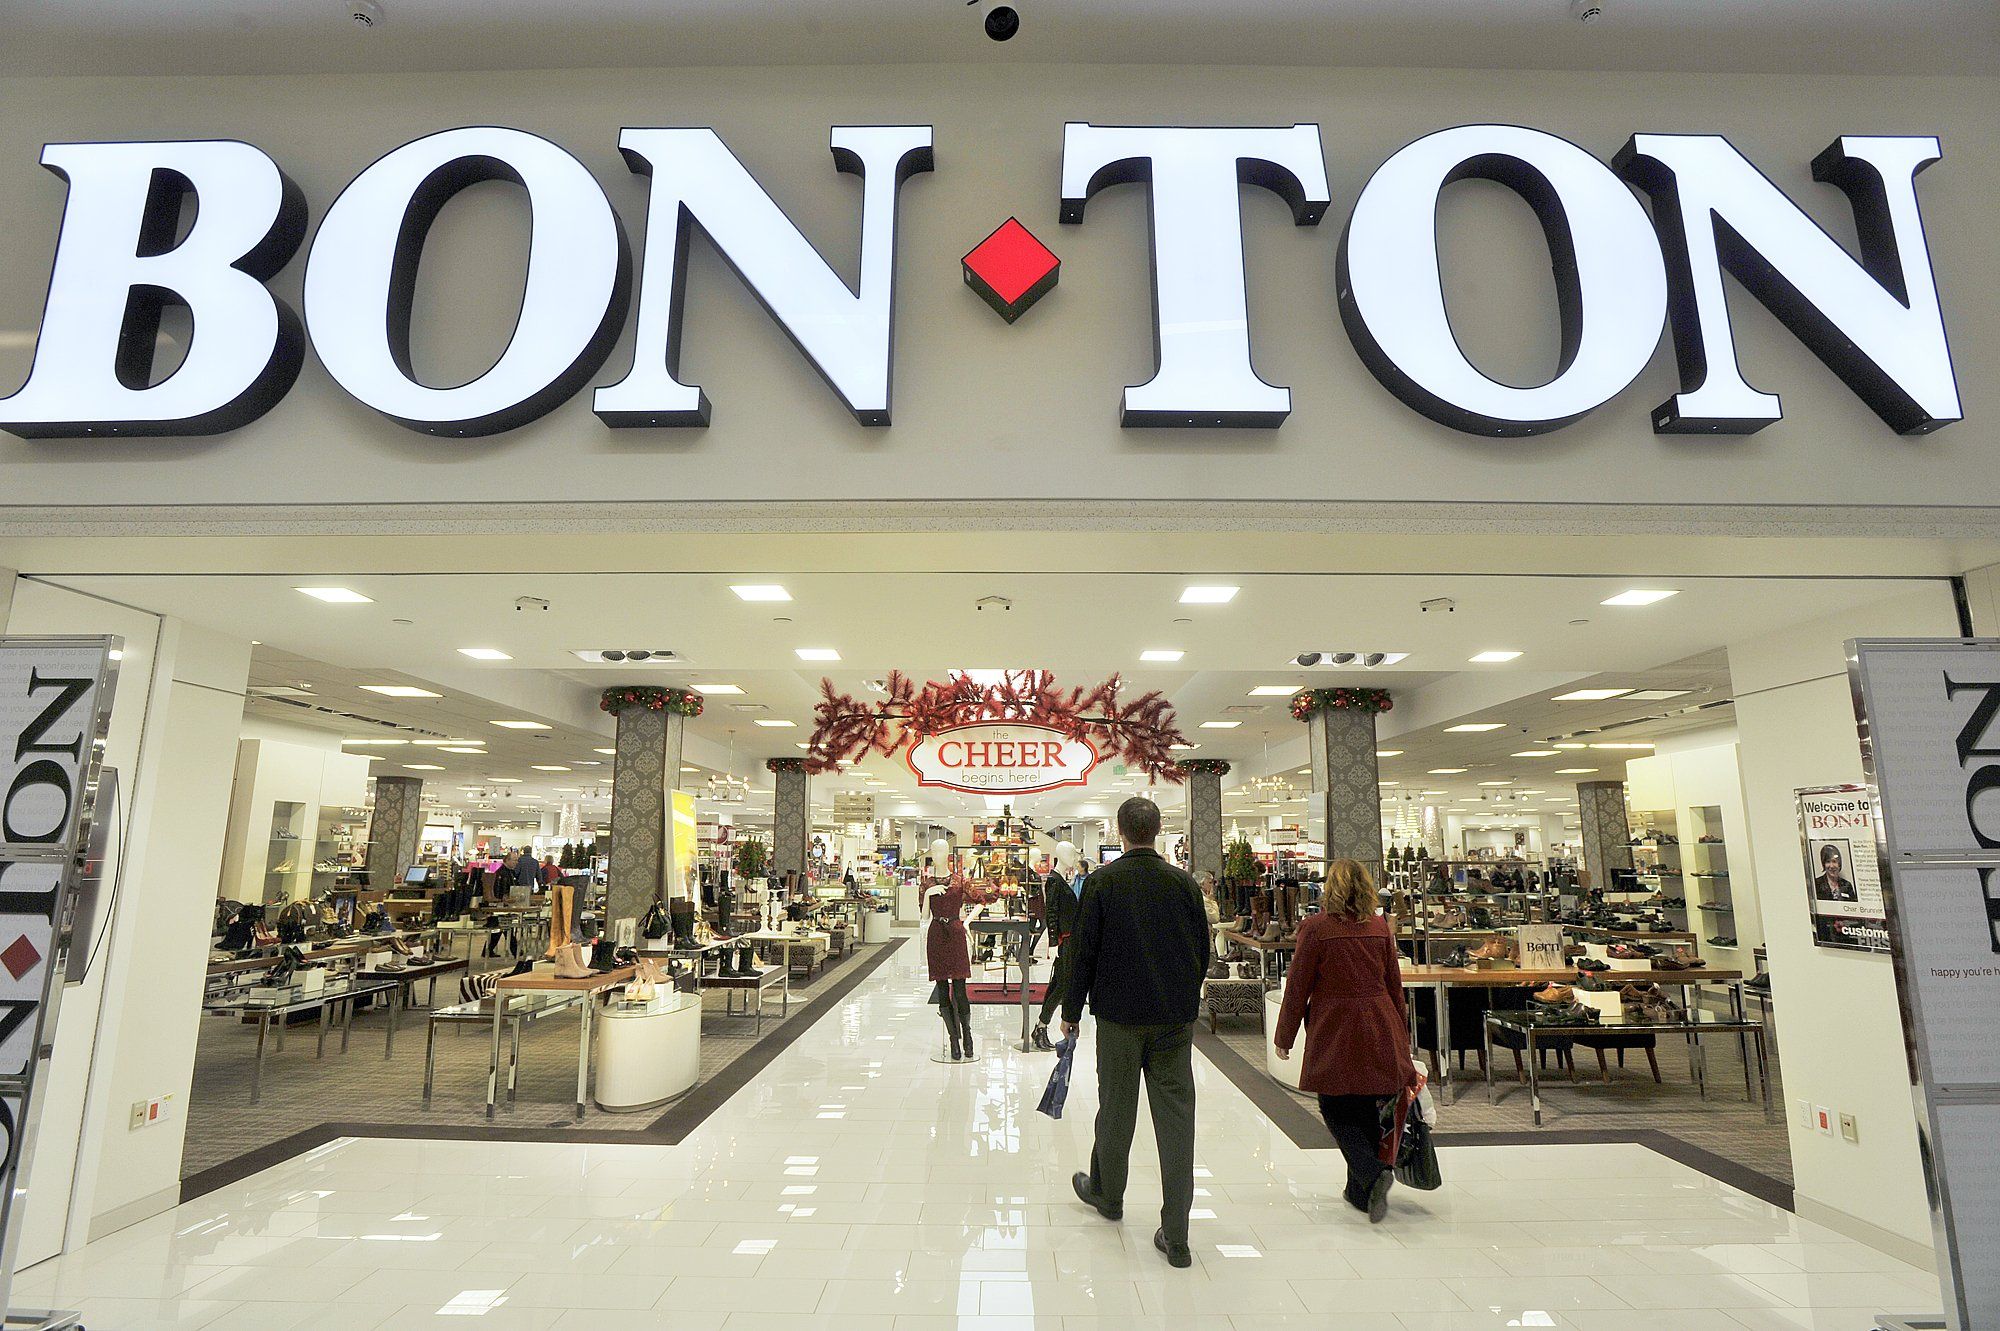 November 13, 2013�The holiday buying season is getting underway at the Maine Mall as stores are be